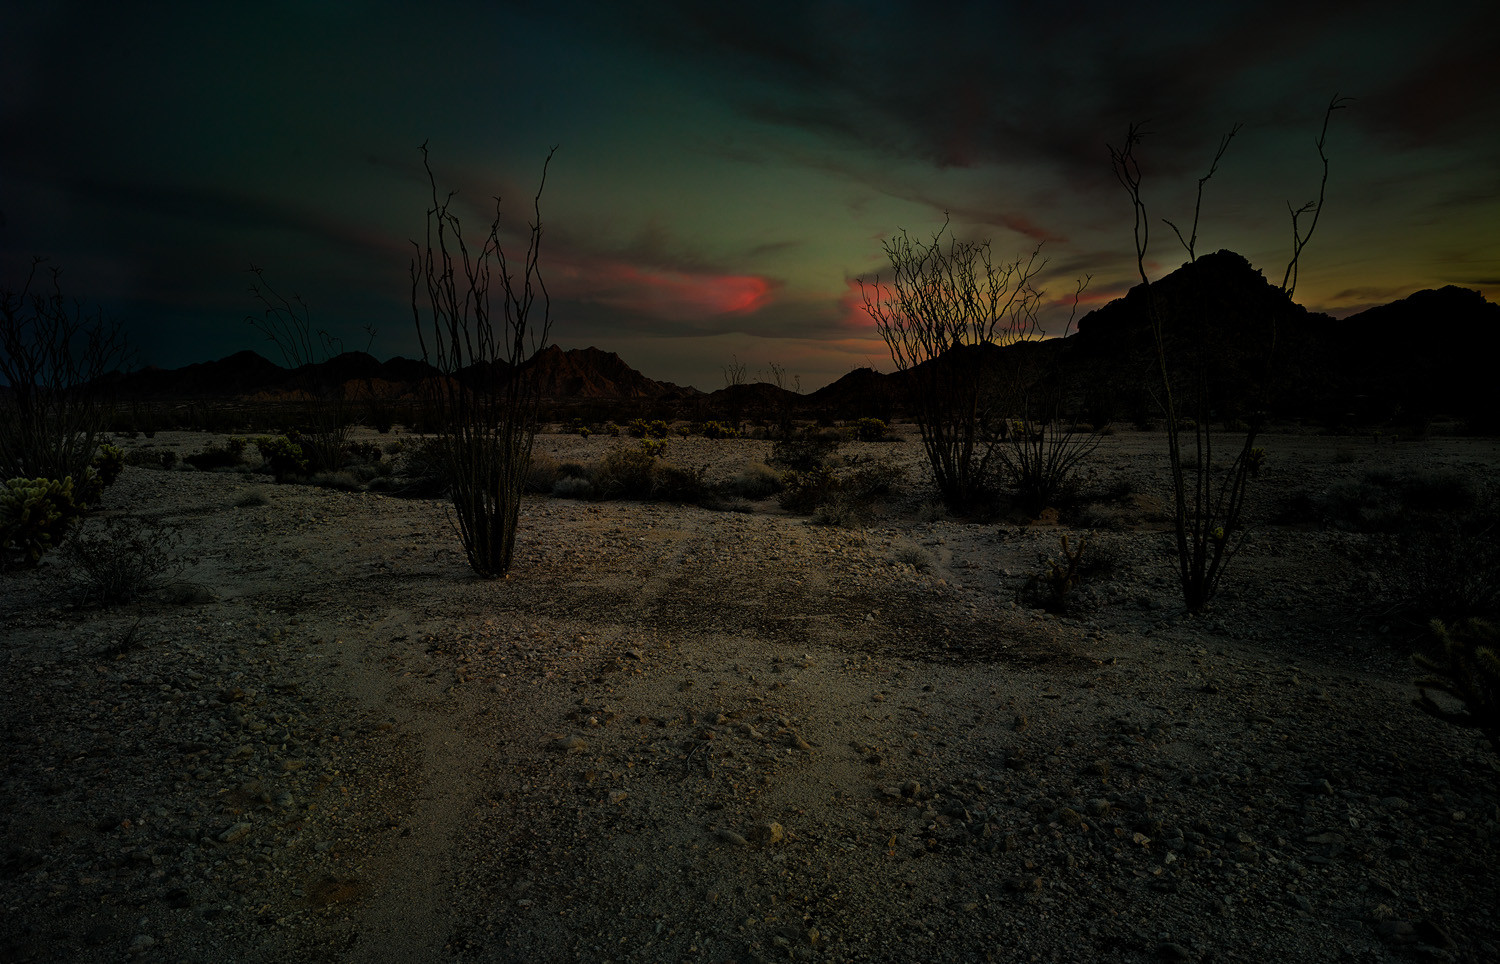 Mark Klett, Slight track with red clouds at dusk, Copper Mountains, 2013